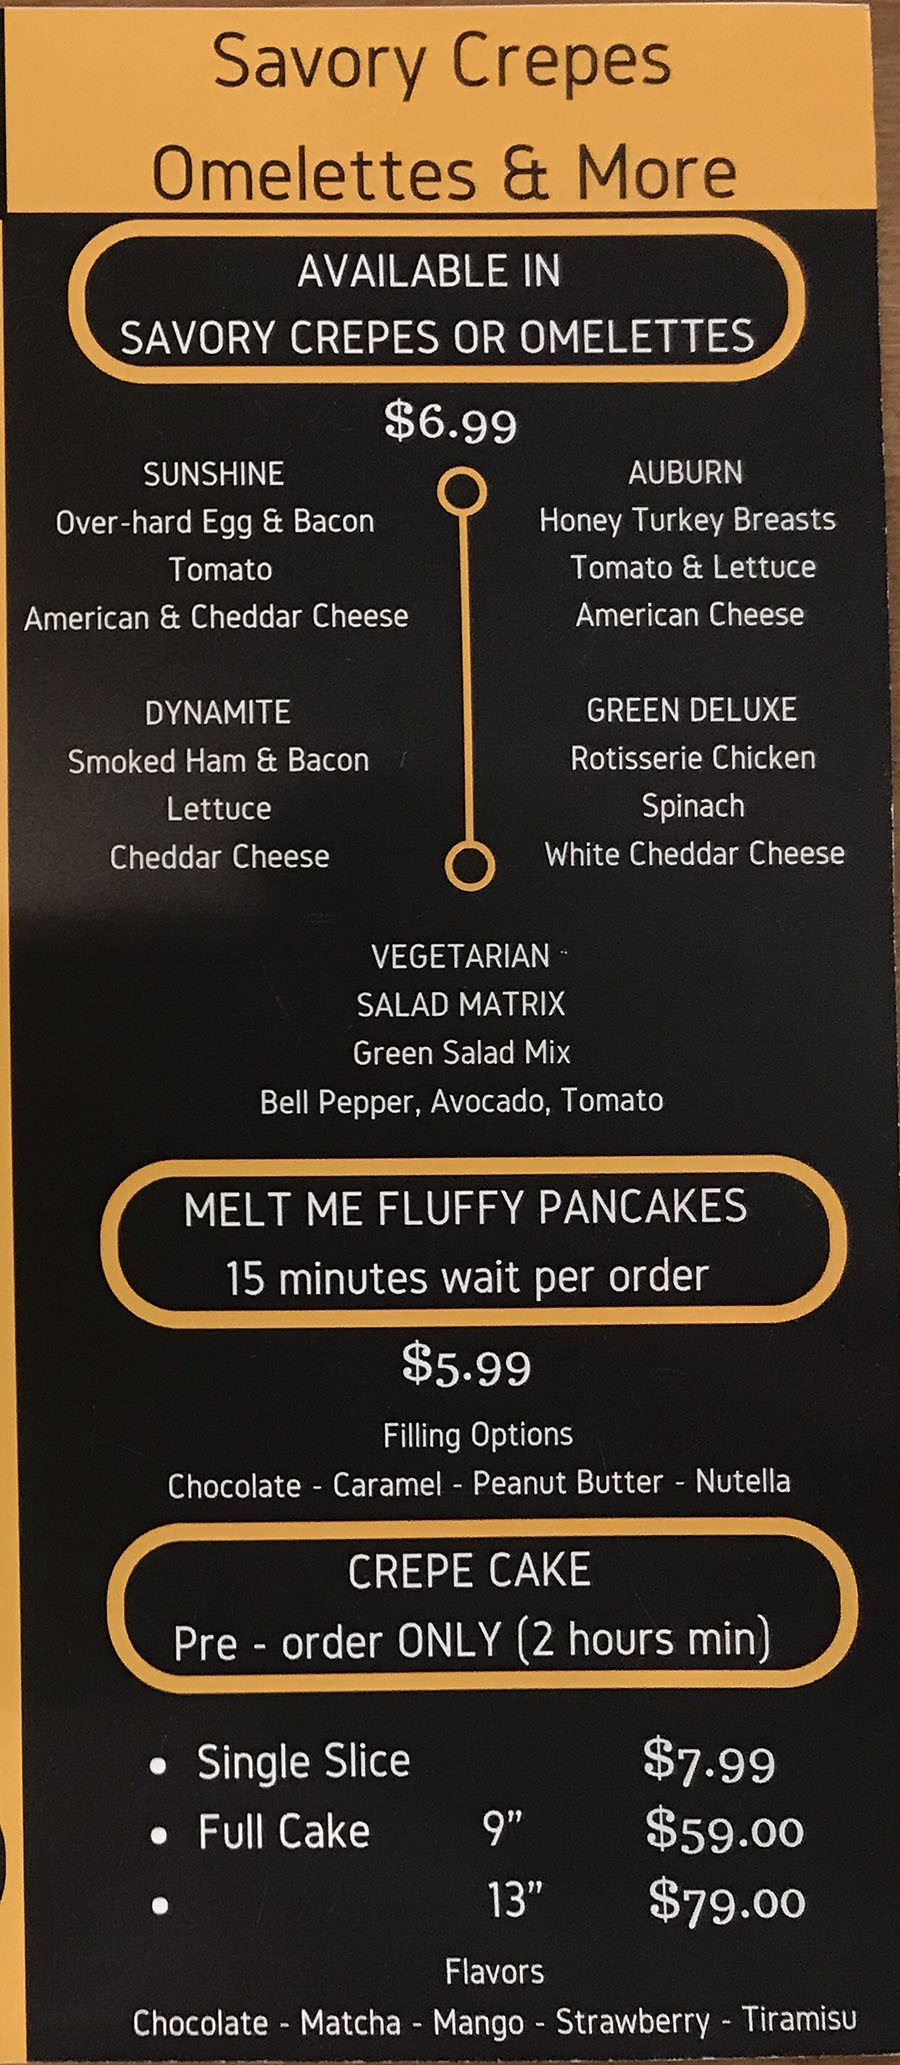 Doki Doki menu - savory crepes, omelettes and more